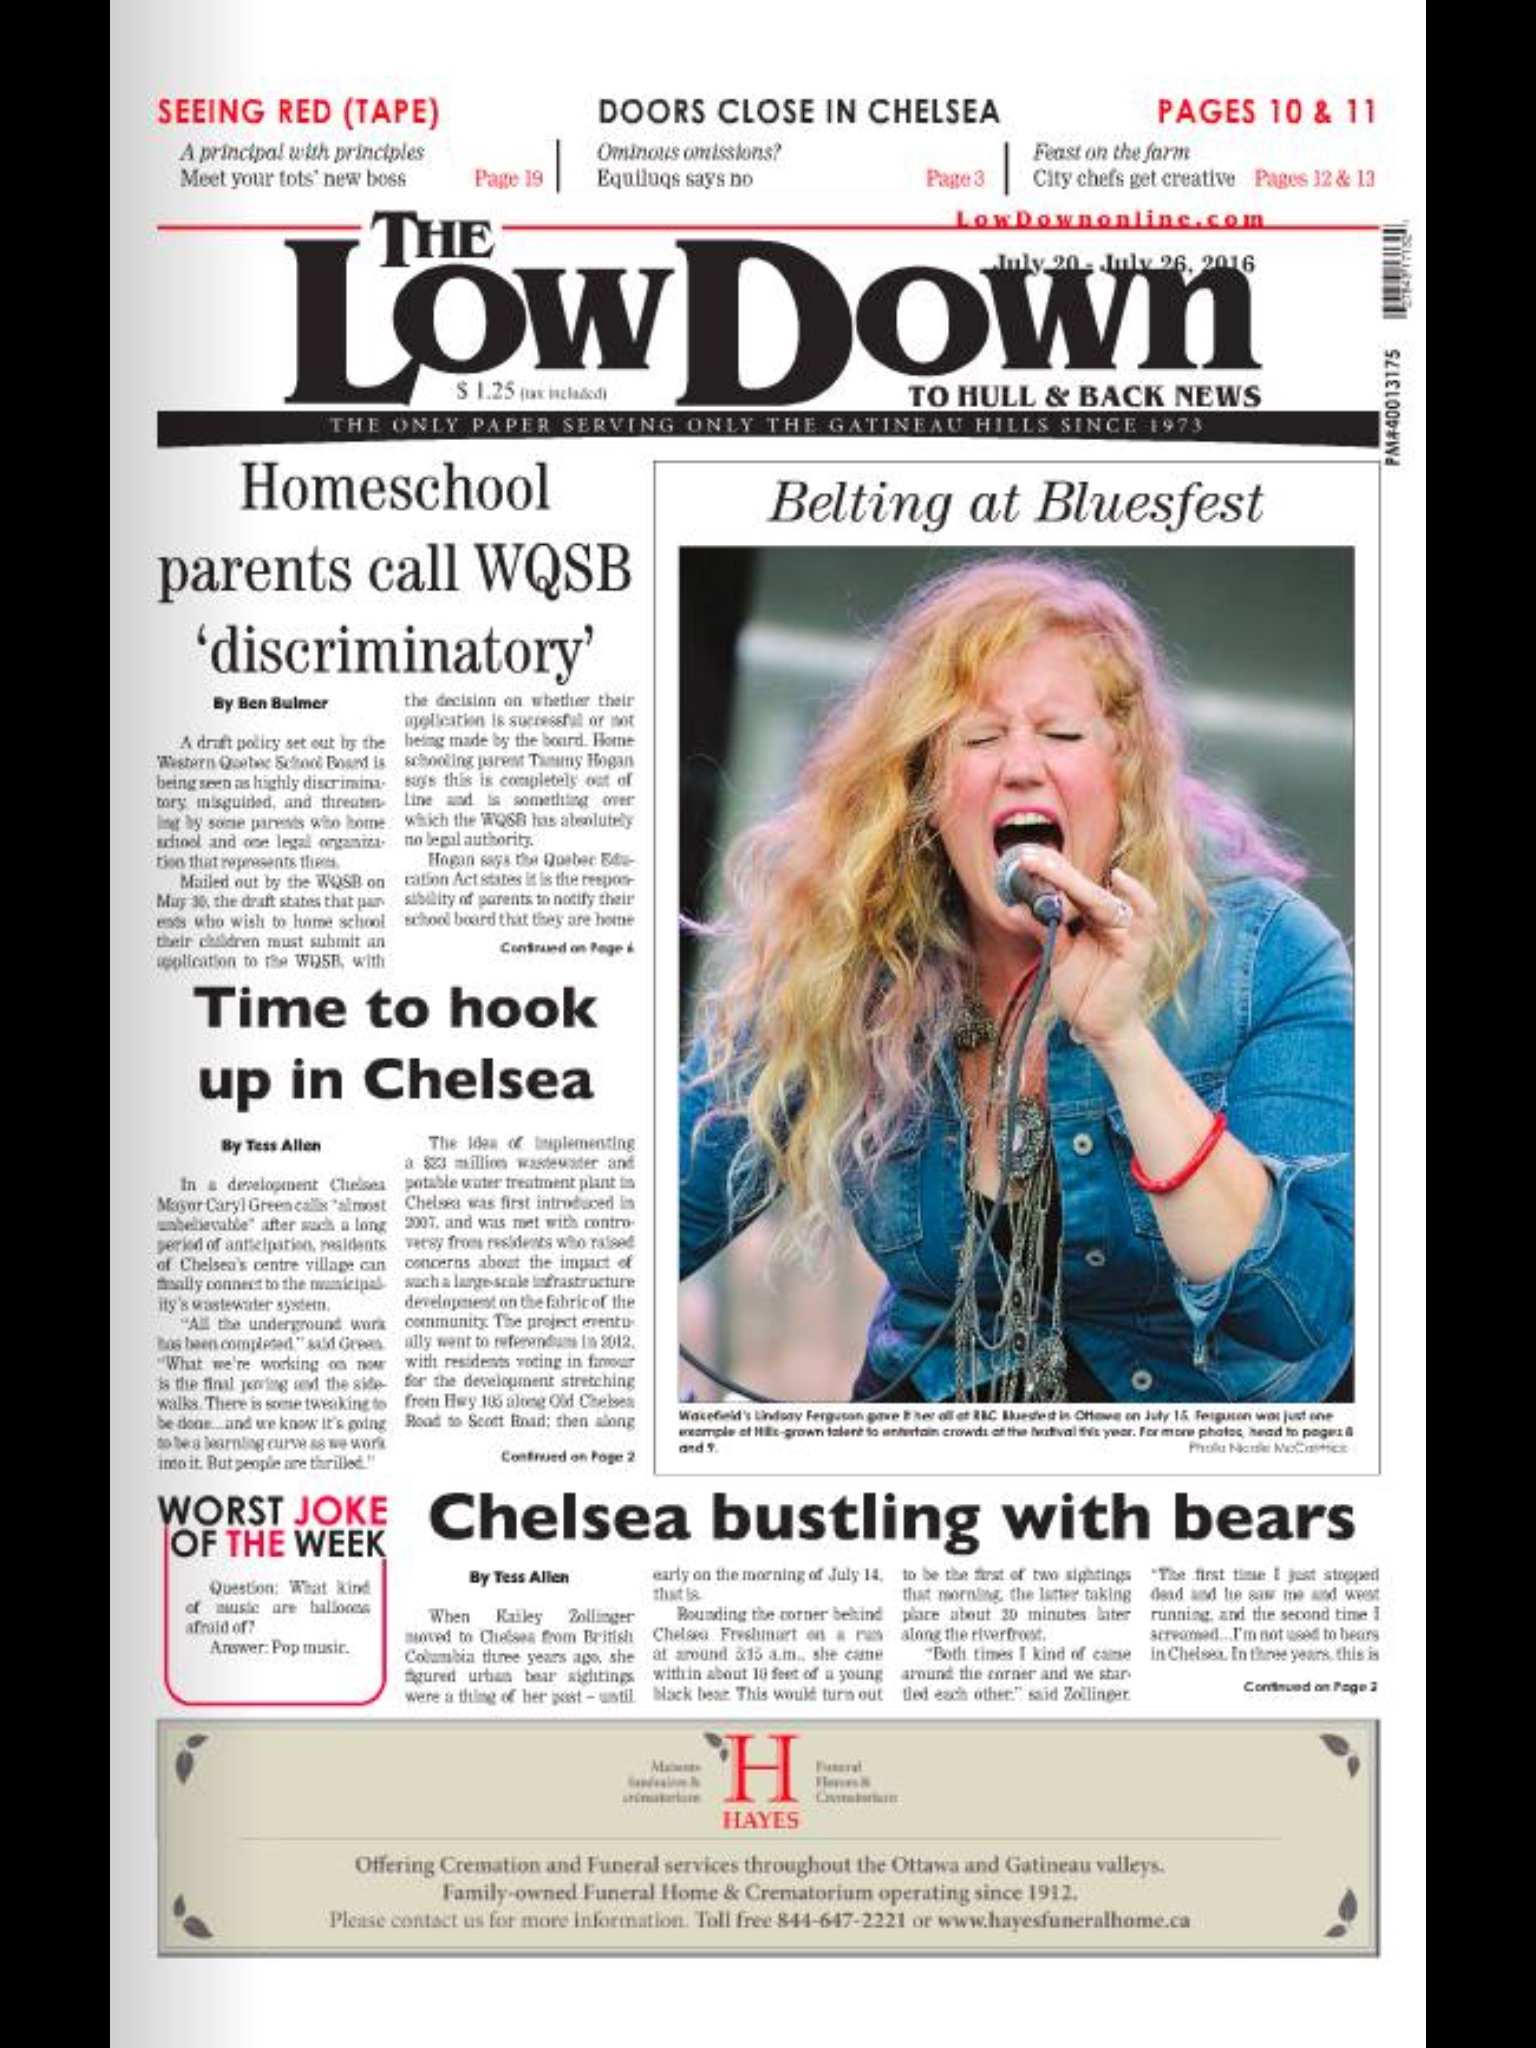 My_first_time_on_the_cover_of_the_Lowdown